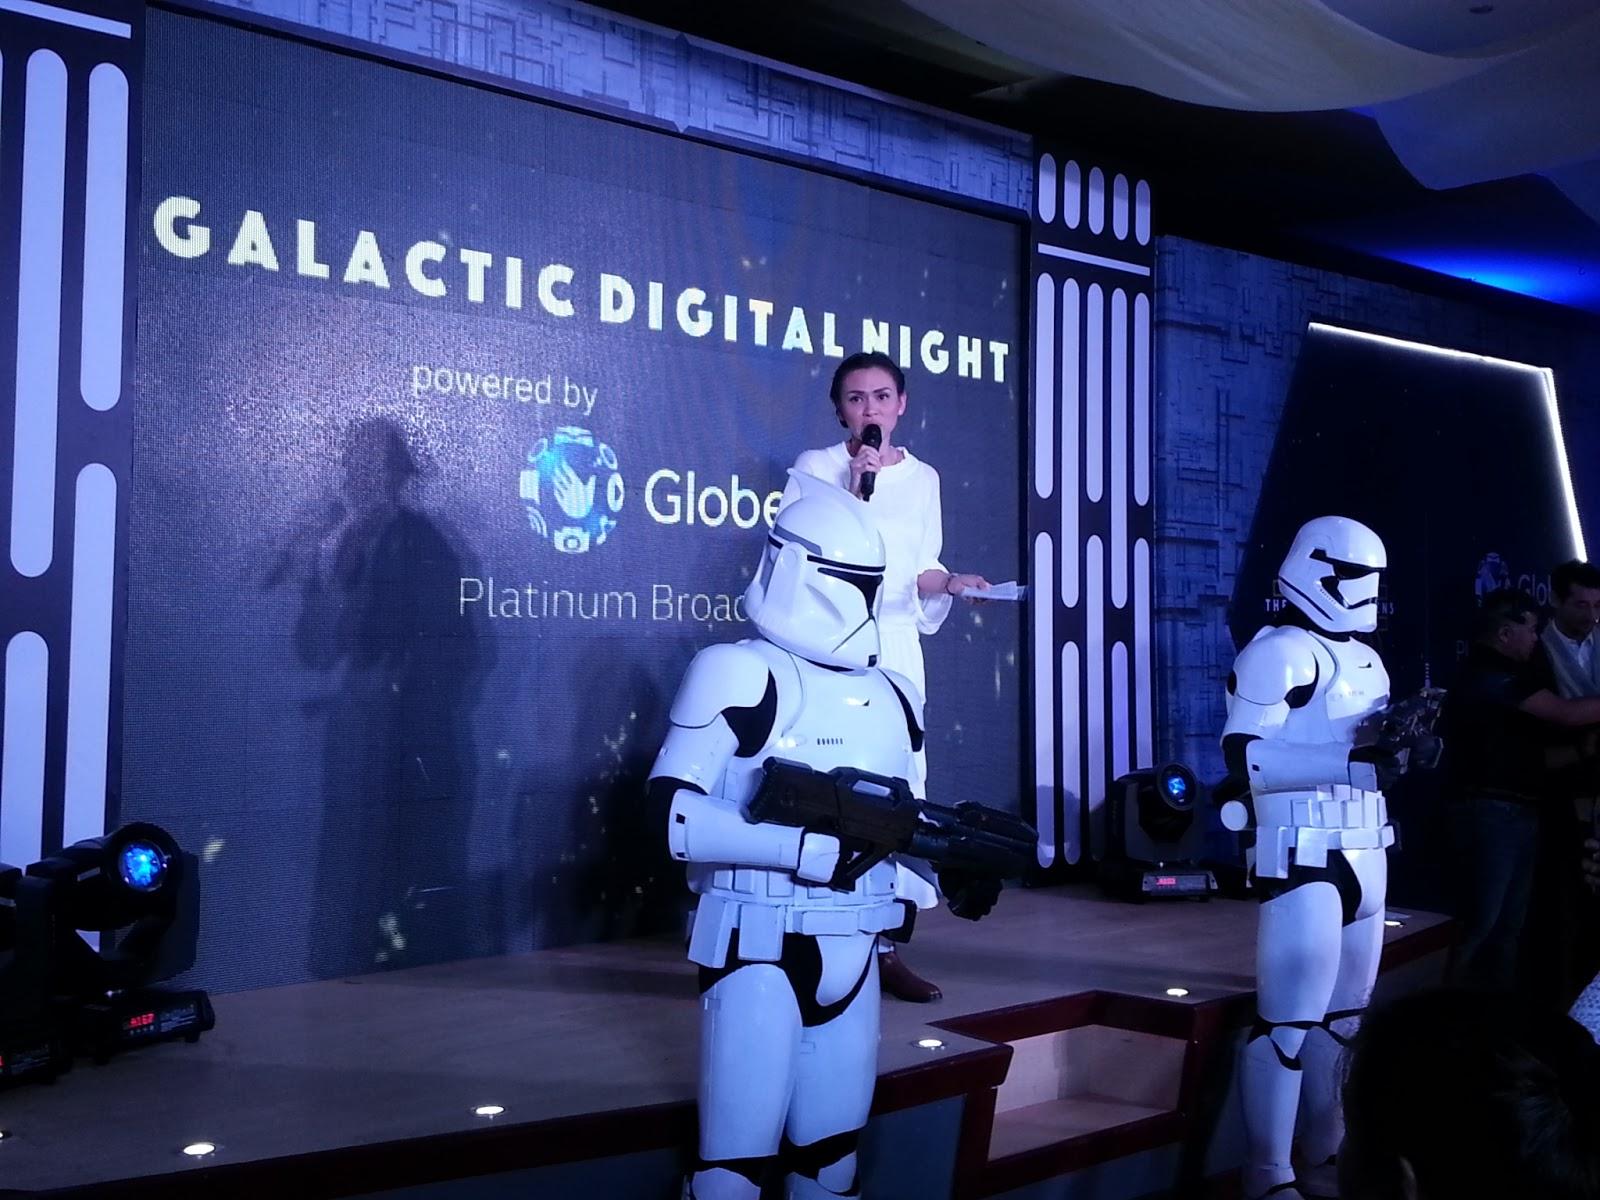 Enjoy Globe's Star Wars Galactic Celebration with your loved